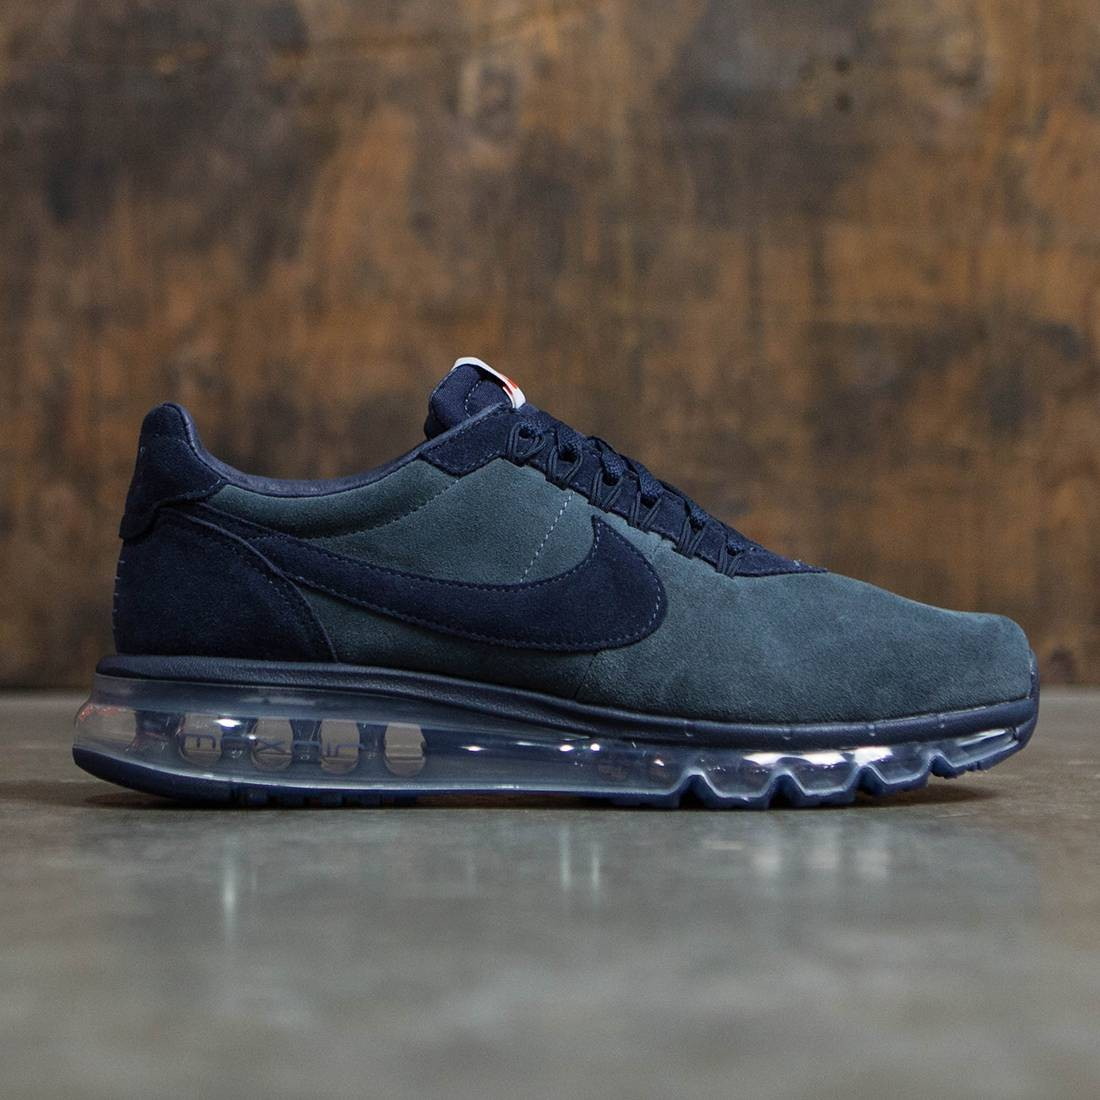 Nike Air Max LD ZERO Black Dark Grey 848624 002 Soldes